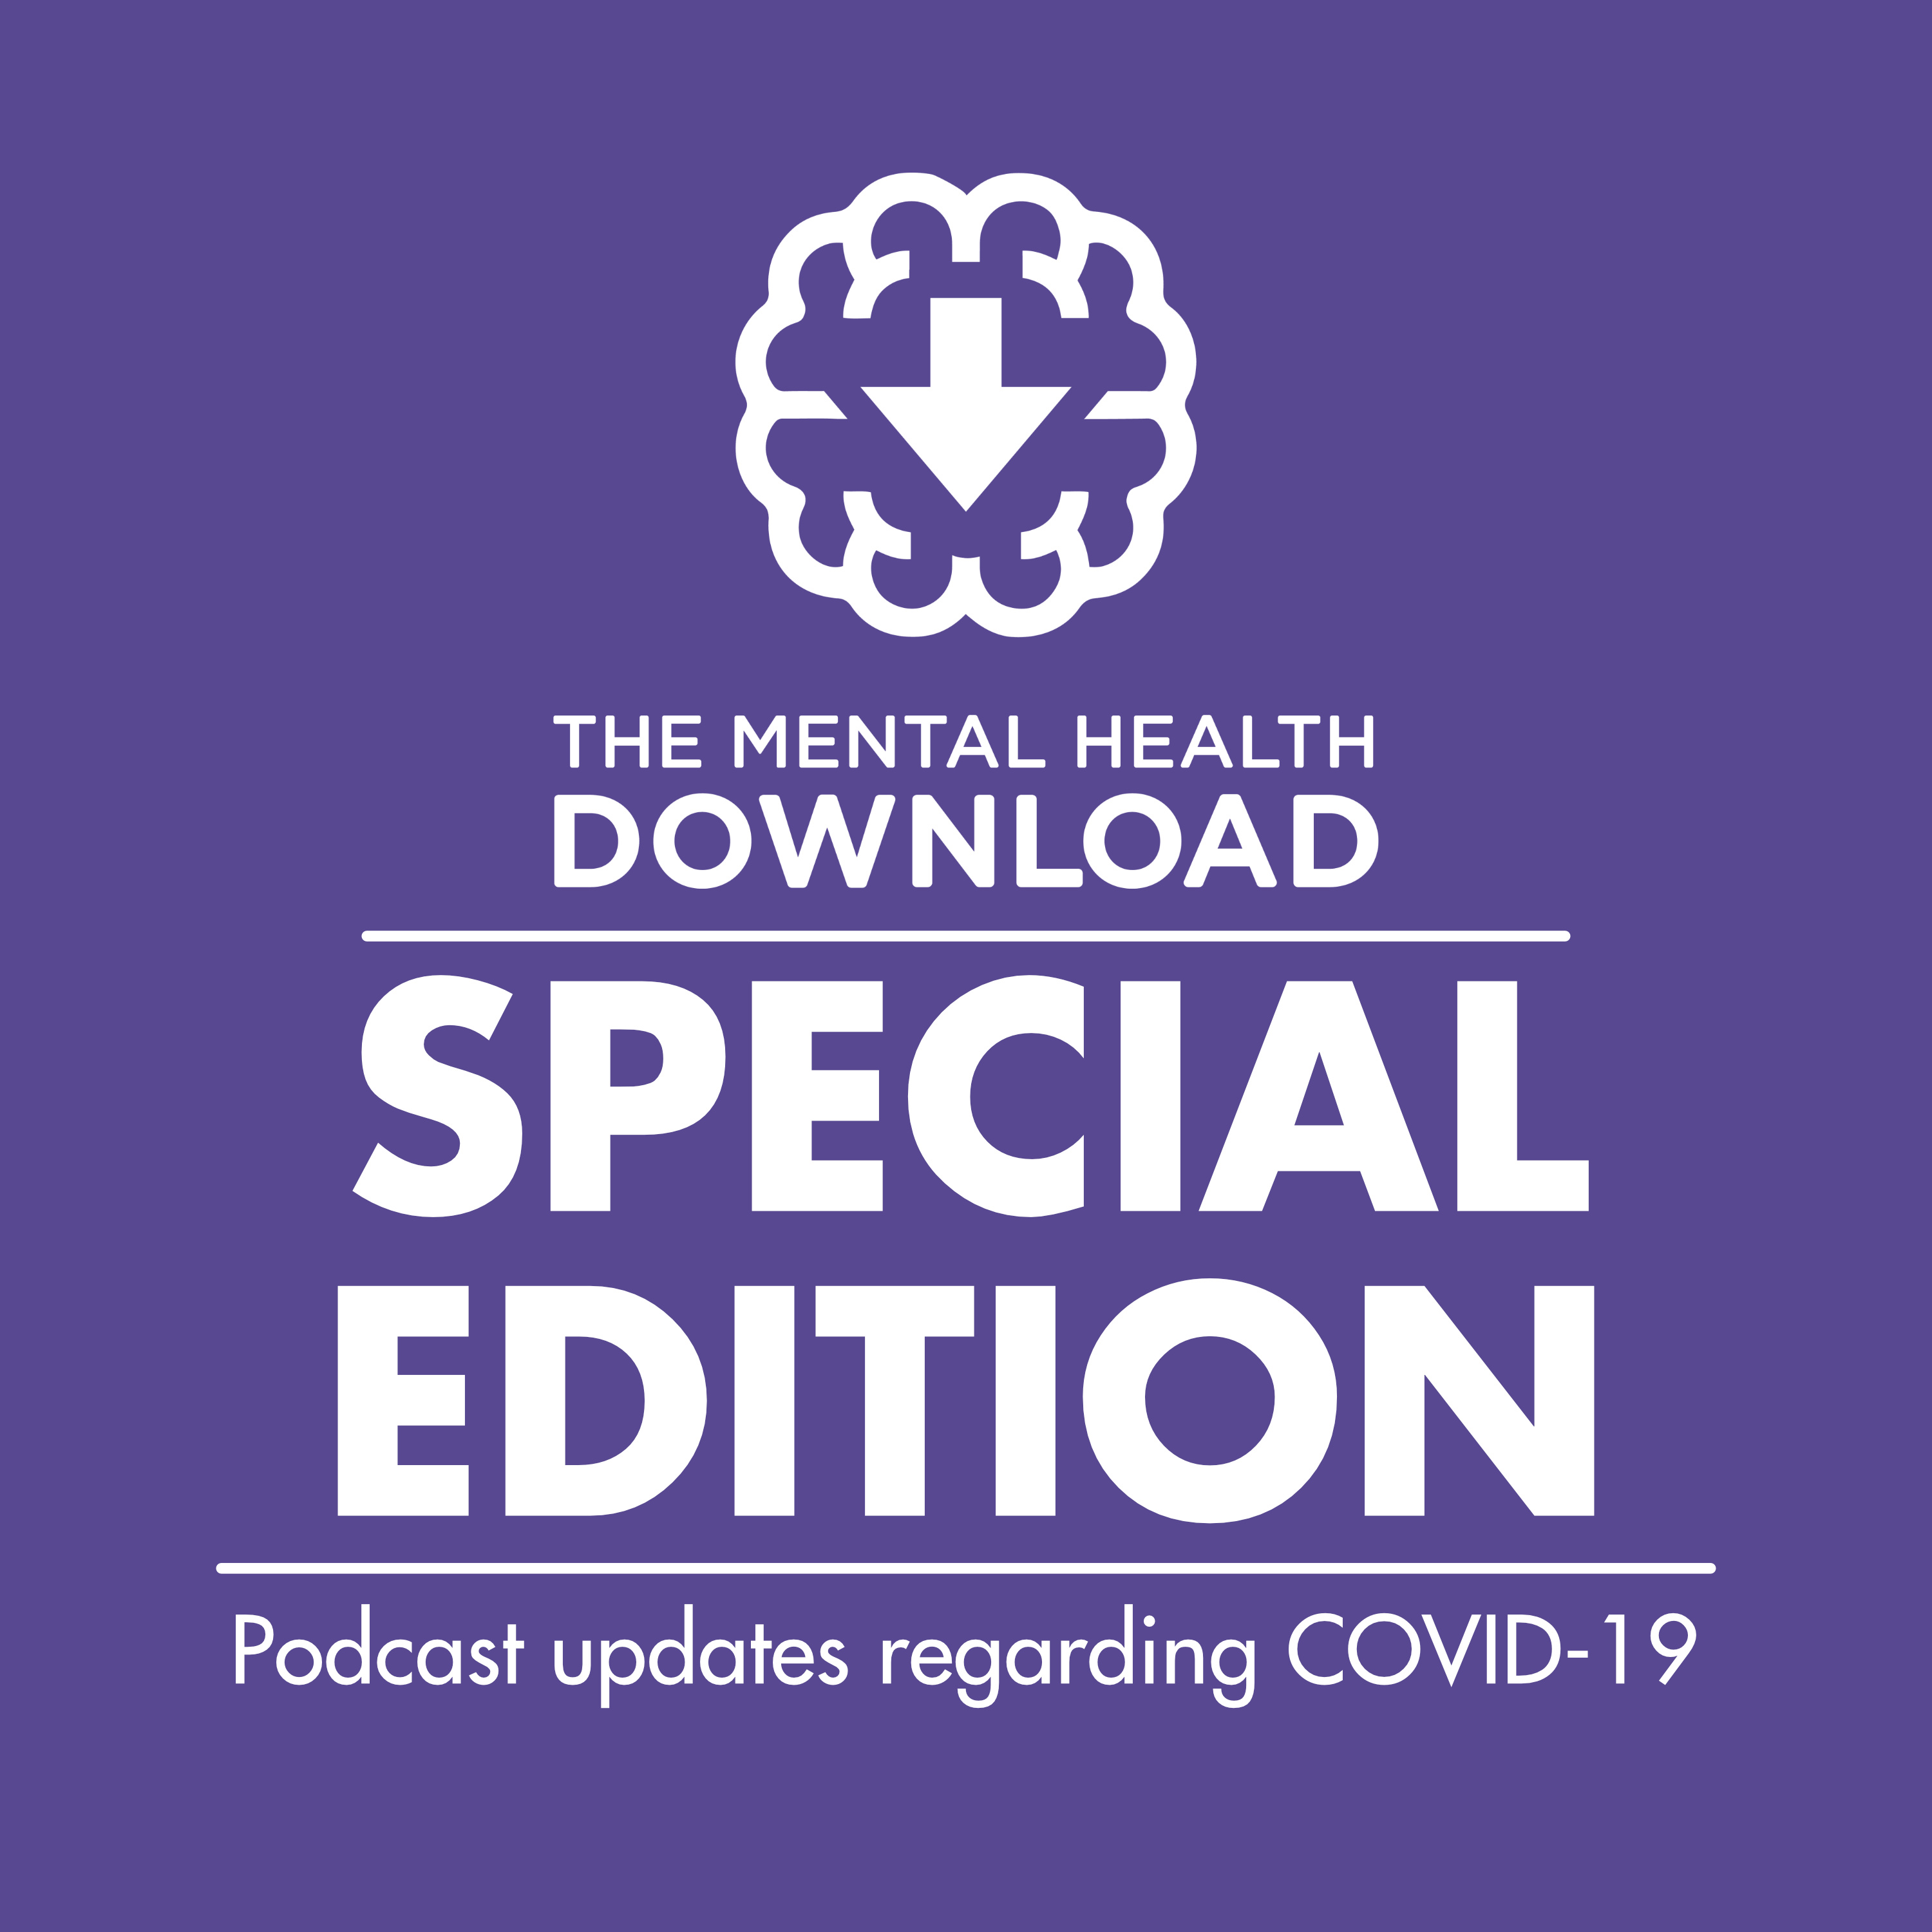 Mental Health Download: Exploring Mental Illness, Suicide, Homelessness and Incarceration - Covid-19 Series: Rebecca Hubbard's Tips to Cope with Coronavirus Anxiety